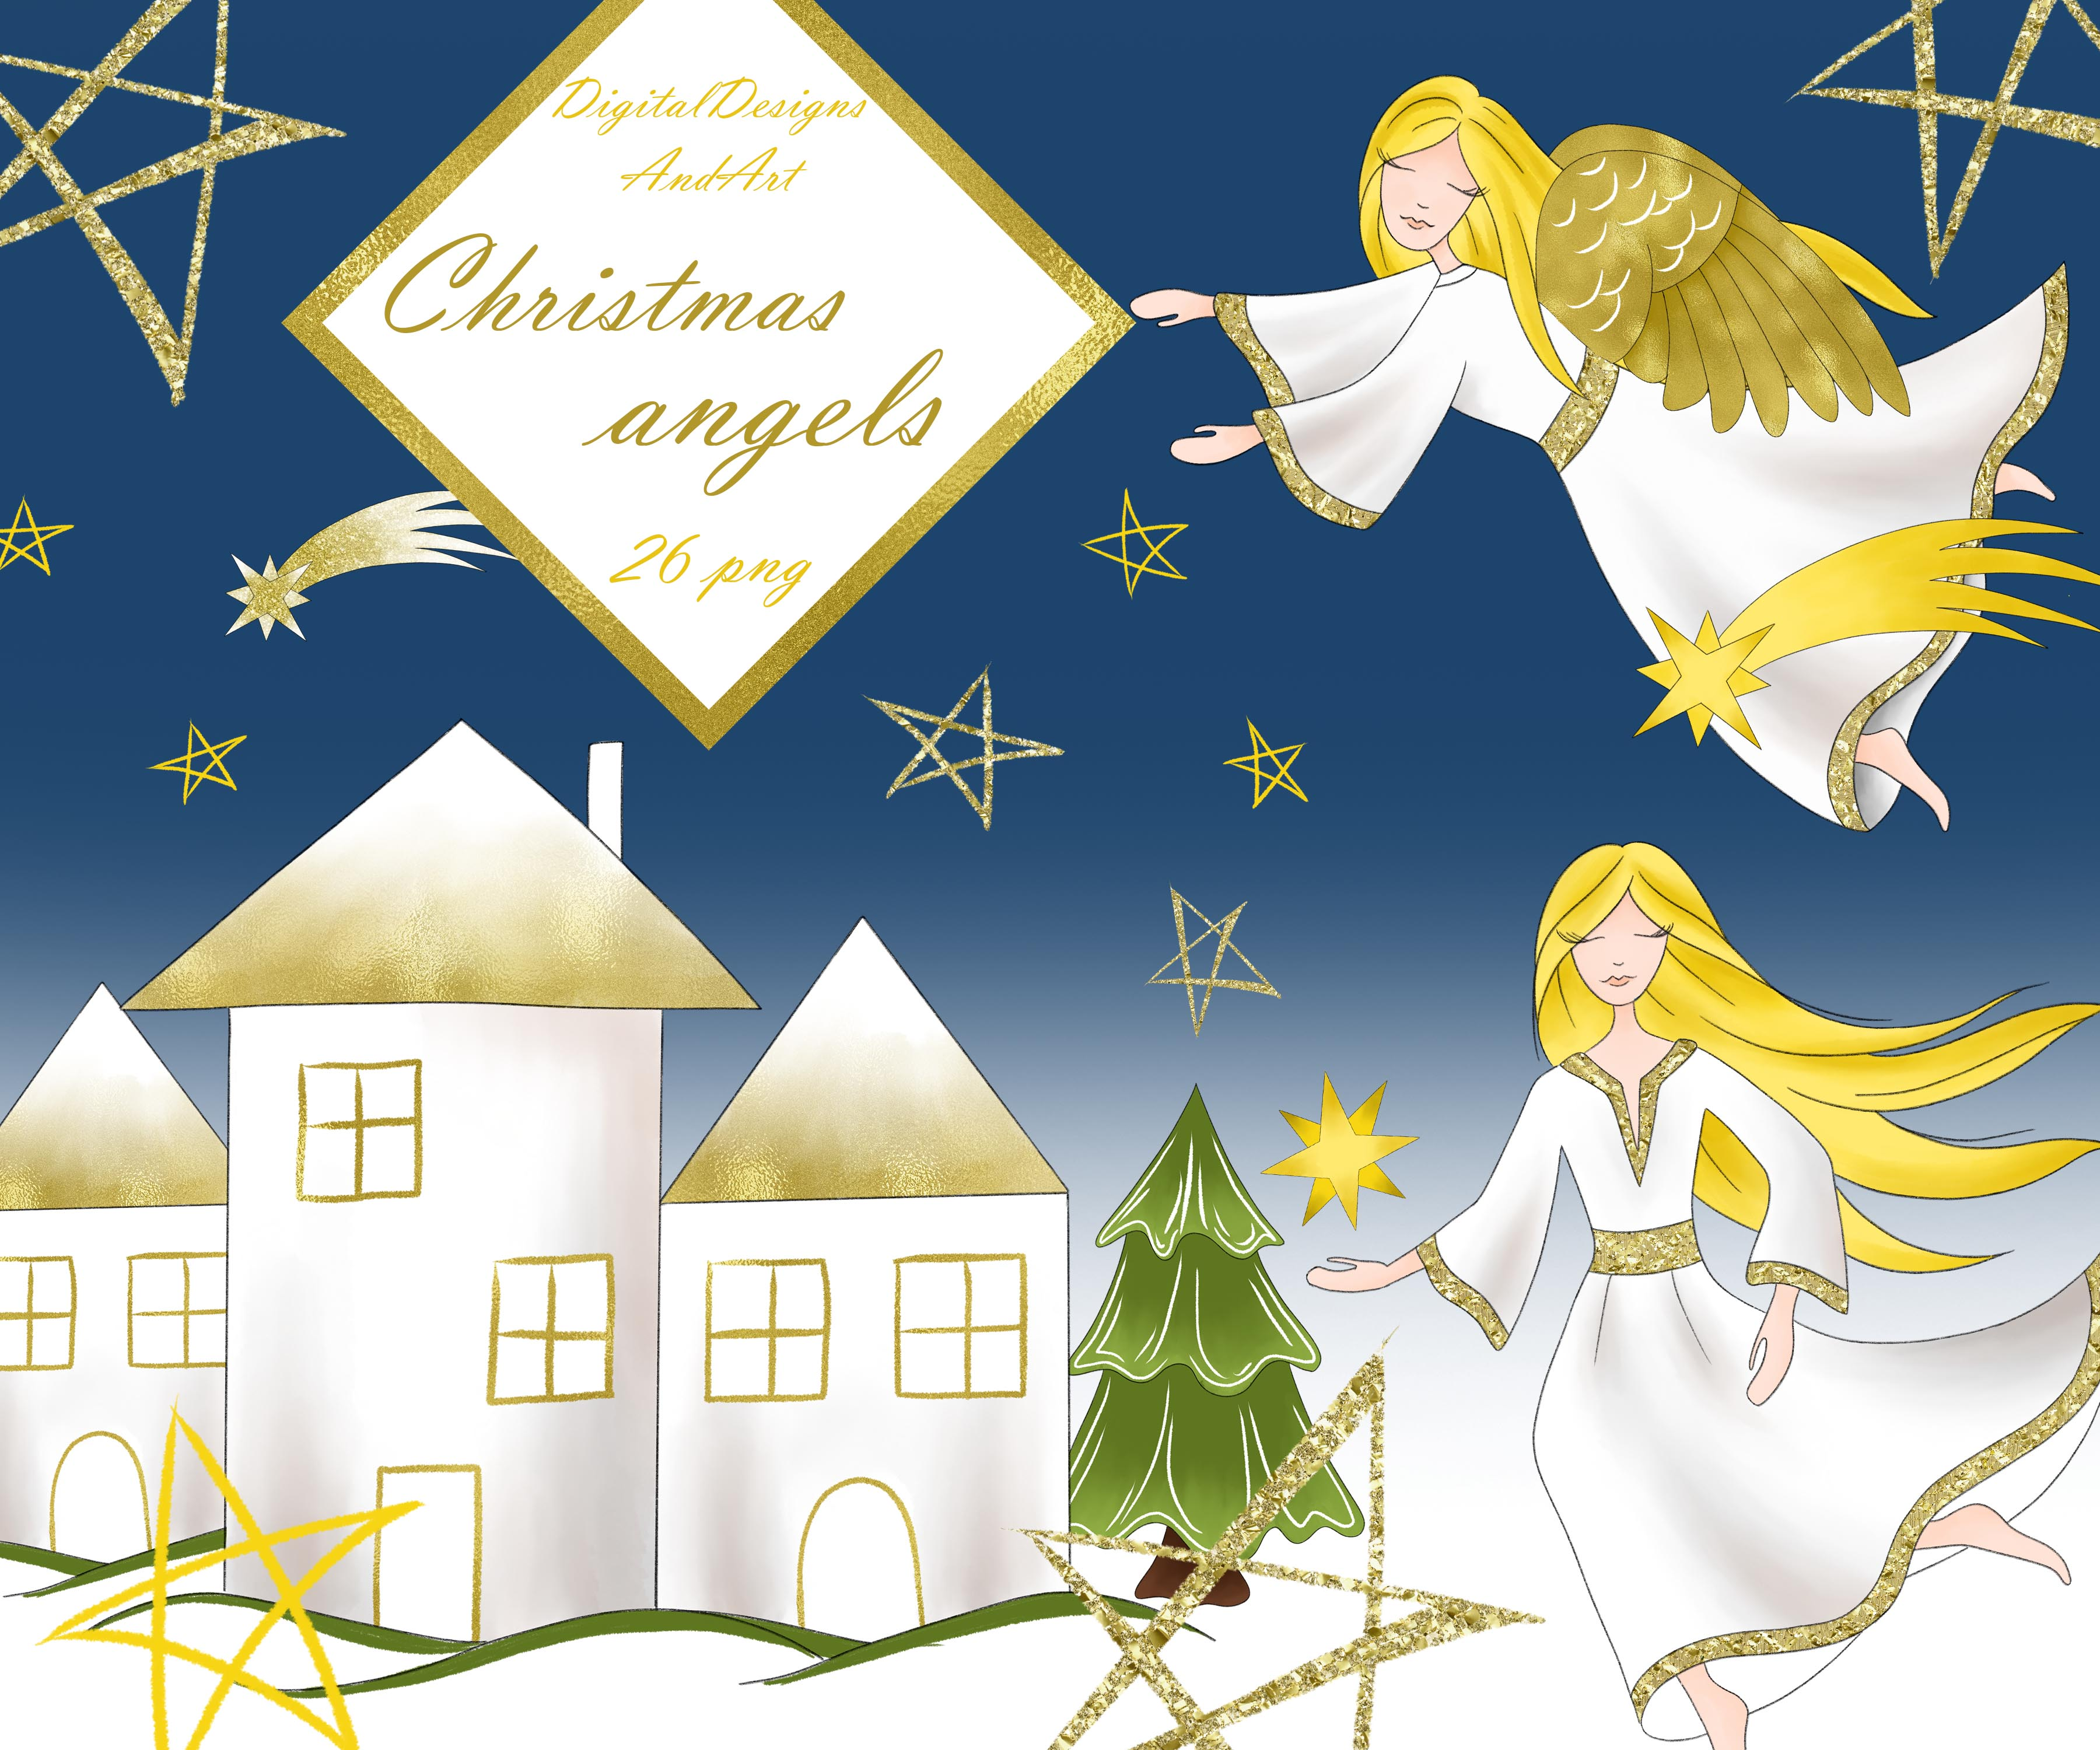 Christmas Angels Images Clip Art.Christmas Angels Clipart